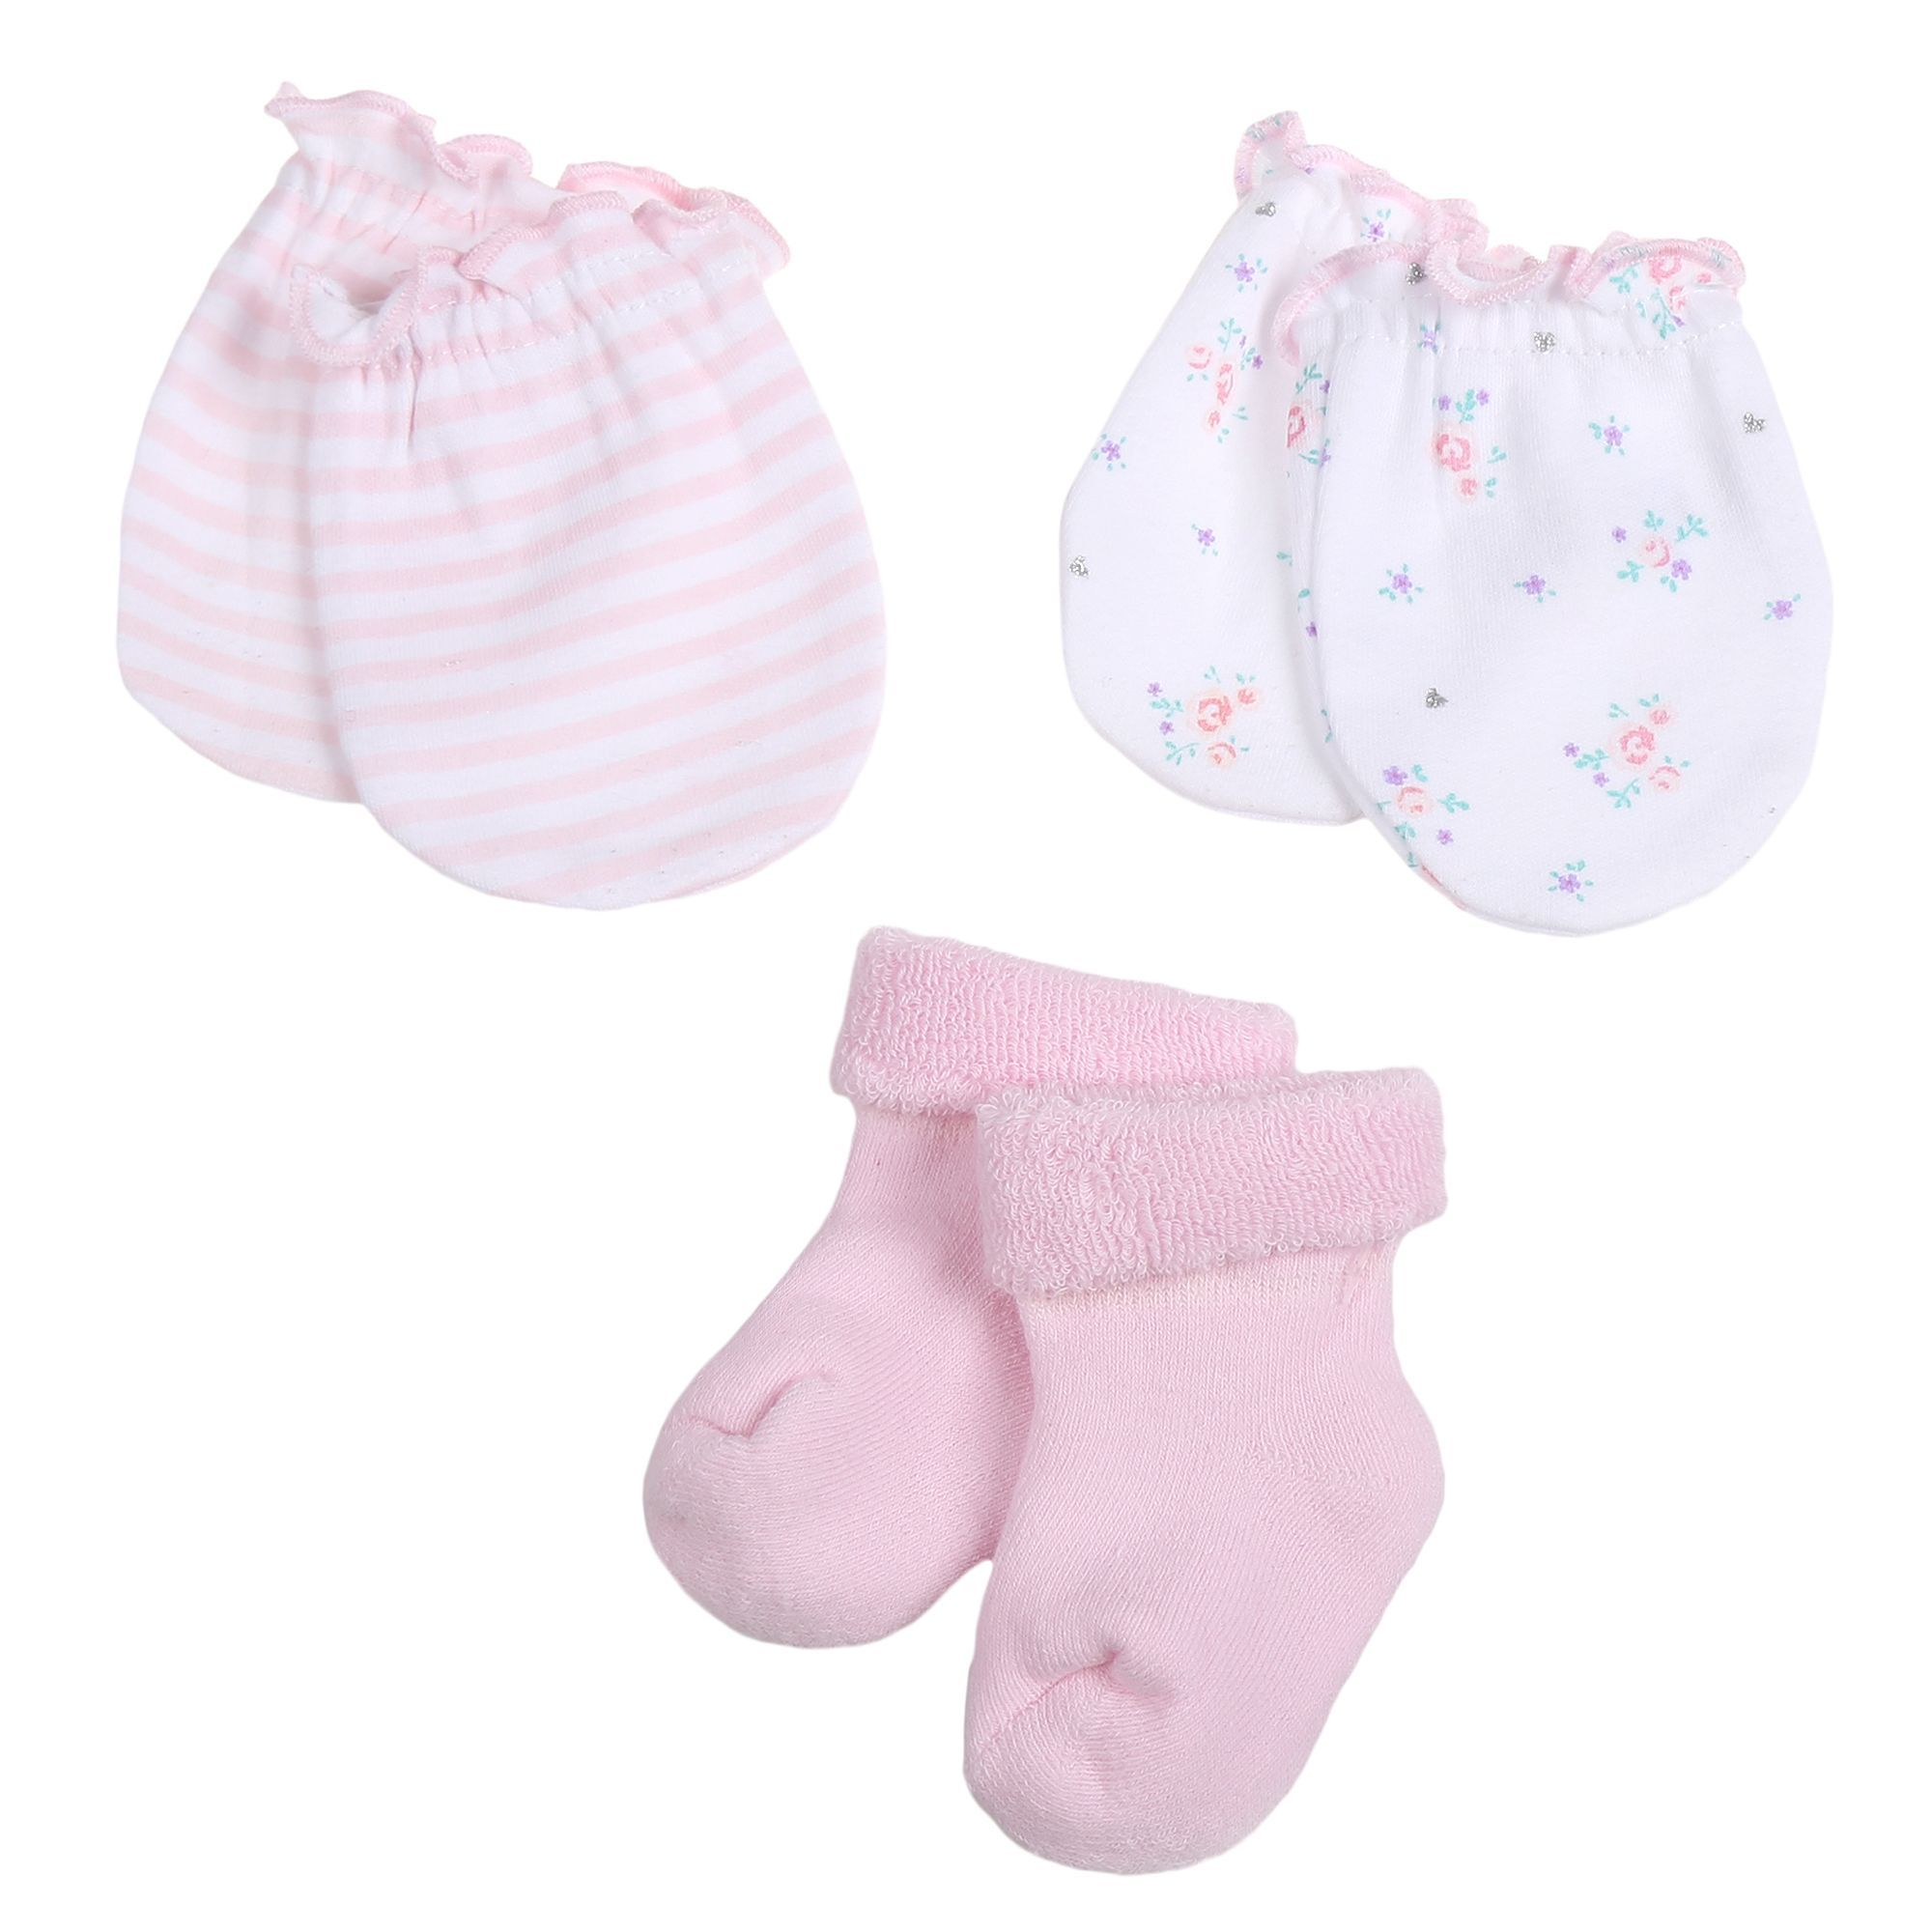 Bed Bath & Beyond on Wondermall Sterling Baby Preemie 3 Piece